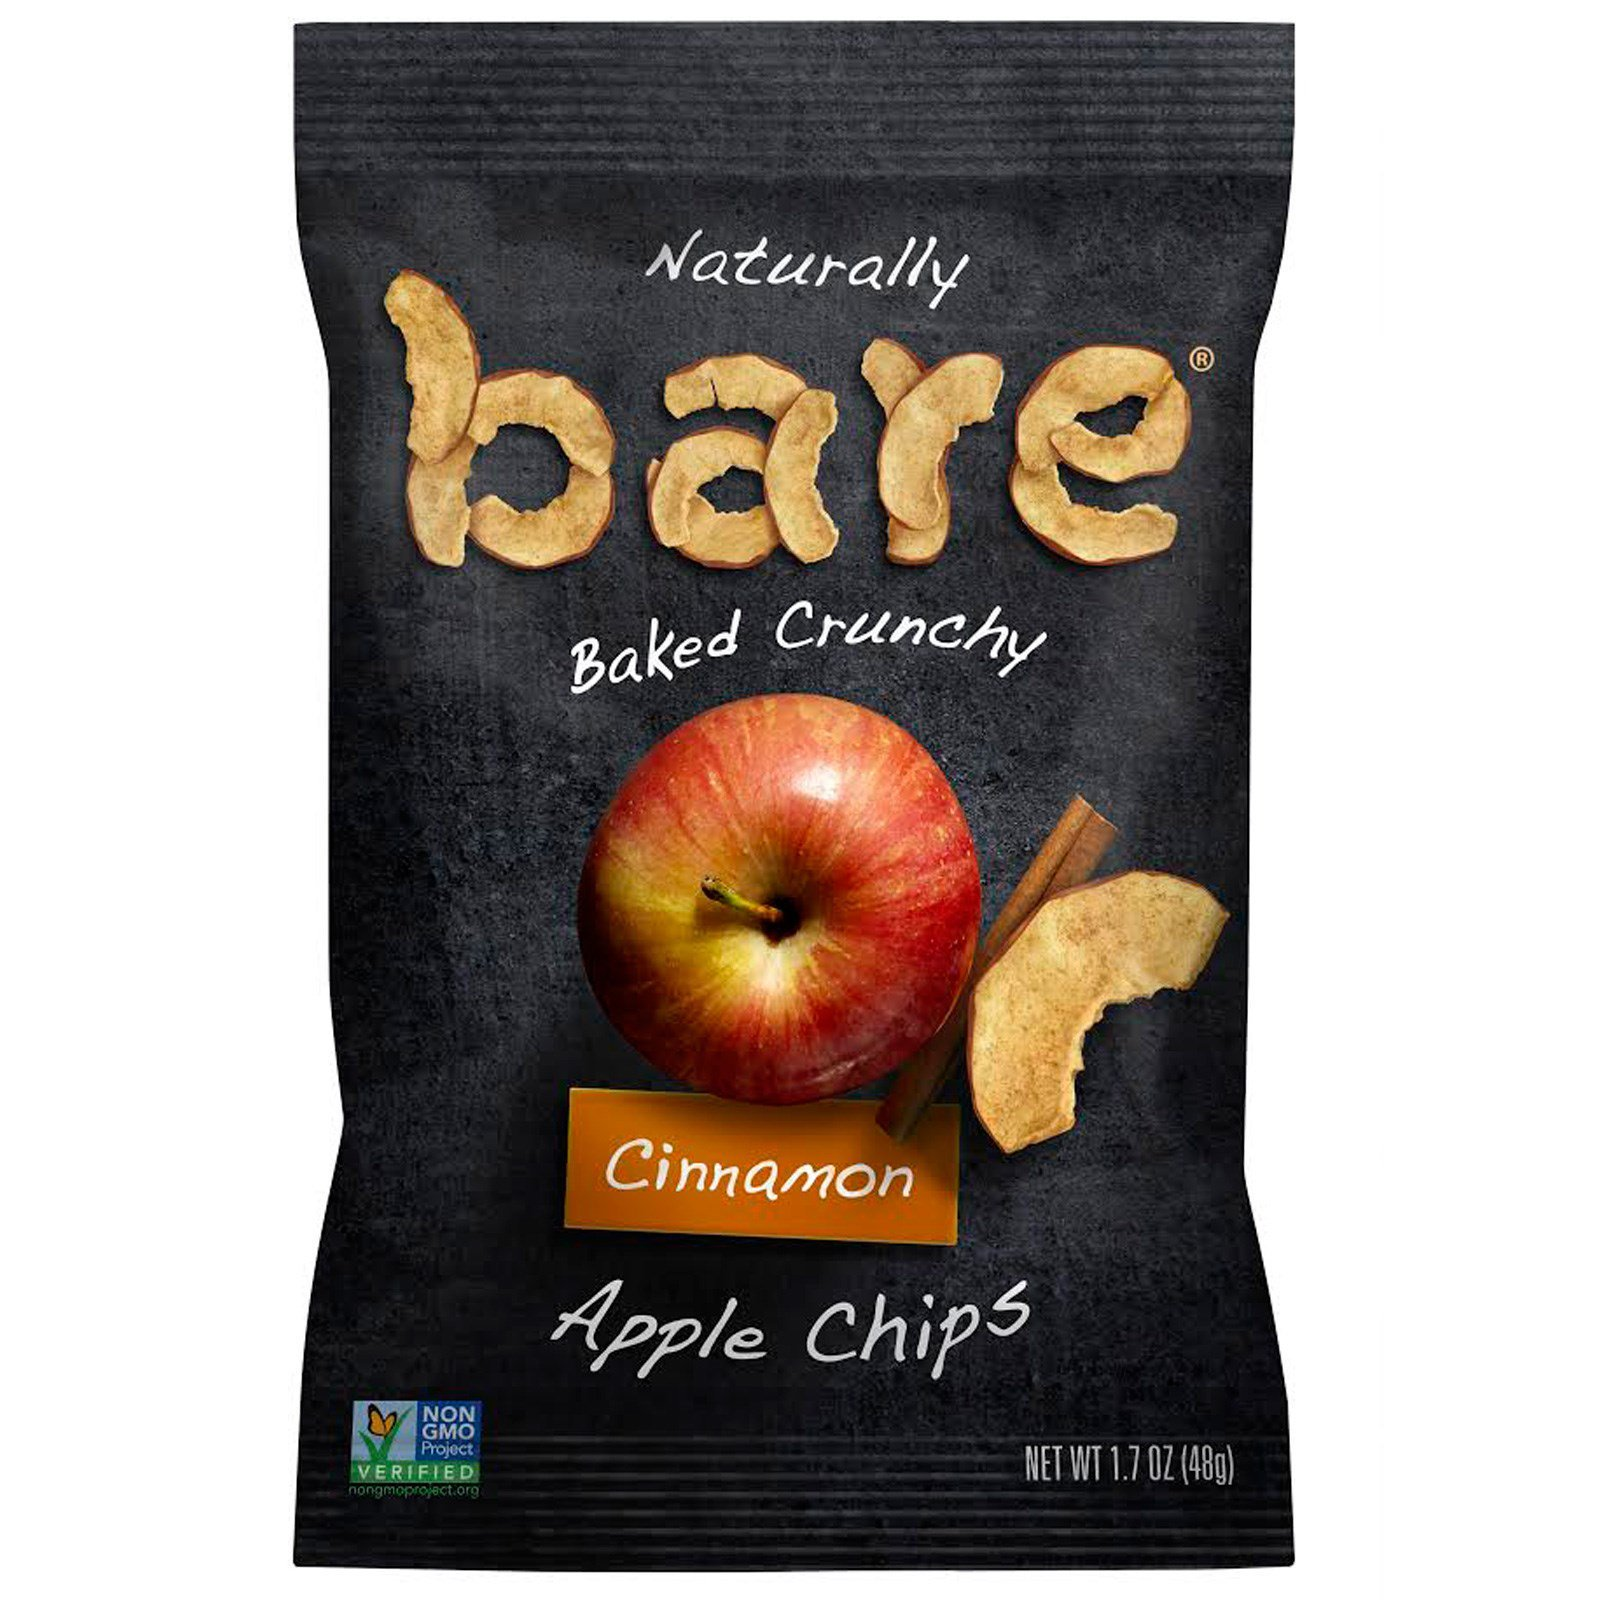 Bare Fruit, Naturally Baked Crunchy, Apple Chips, Cinnamon, 1.7 oz (48 g)